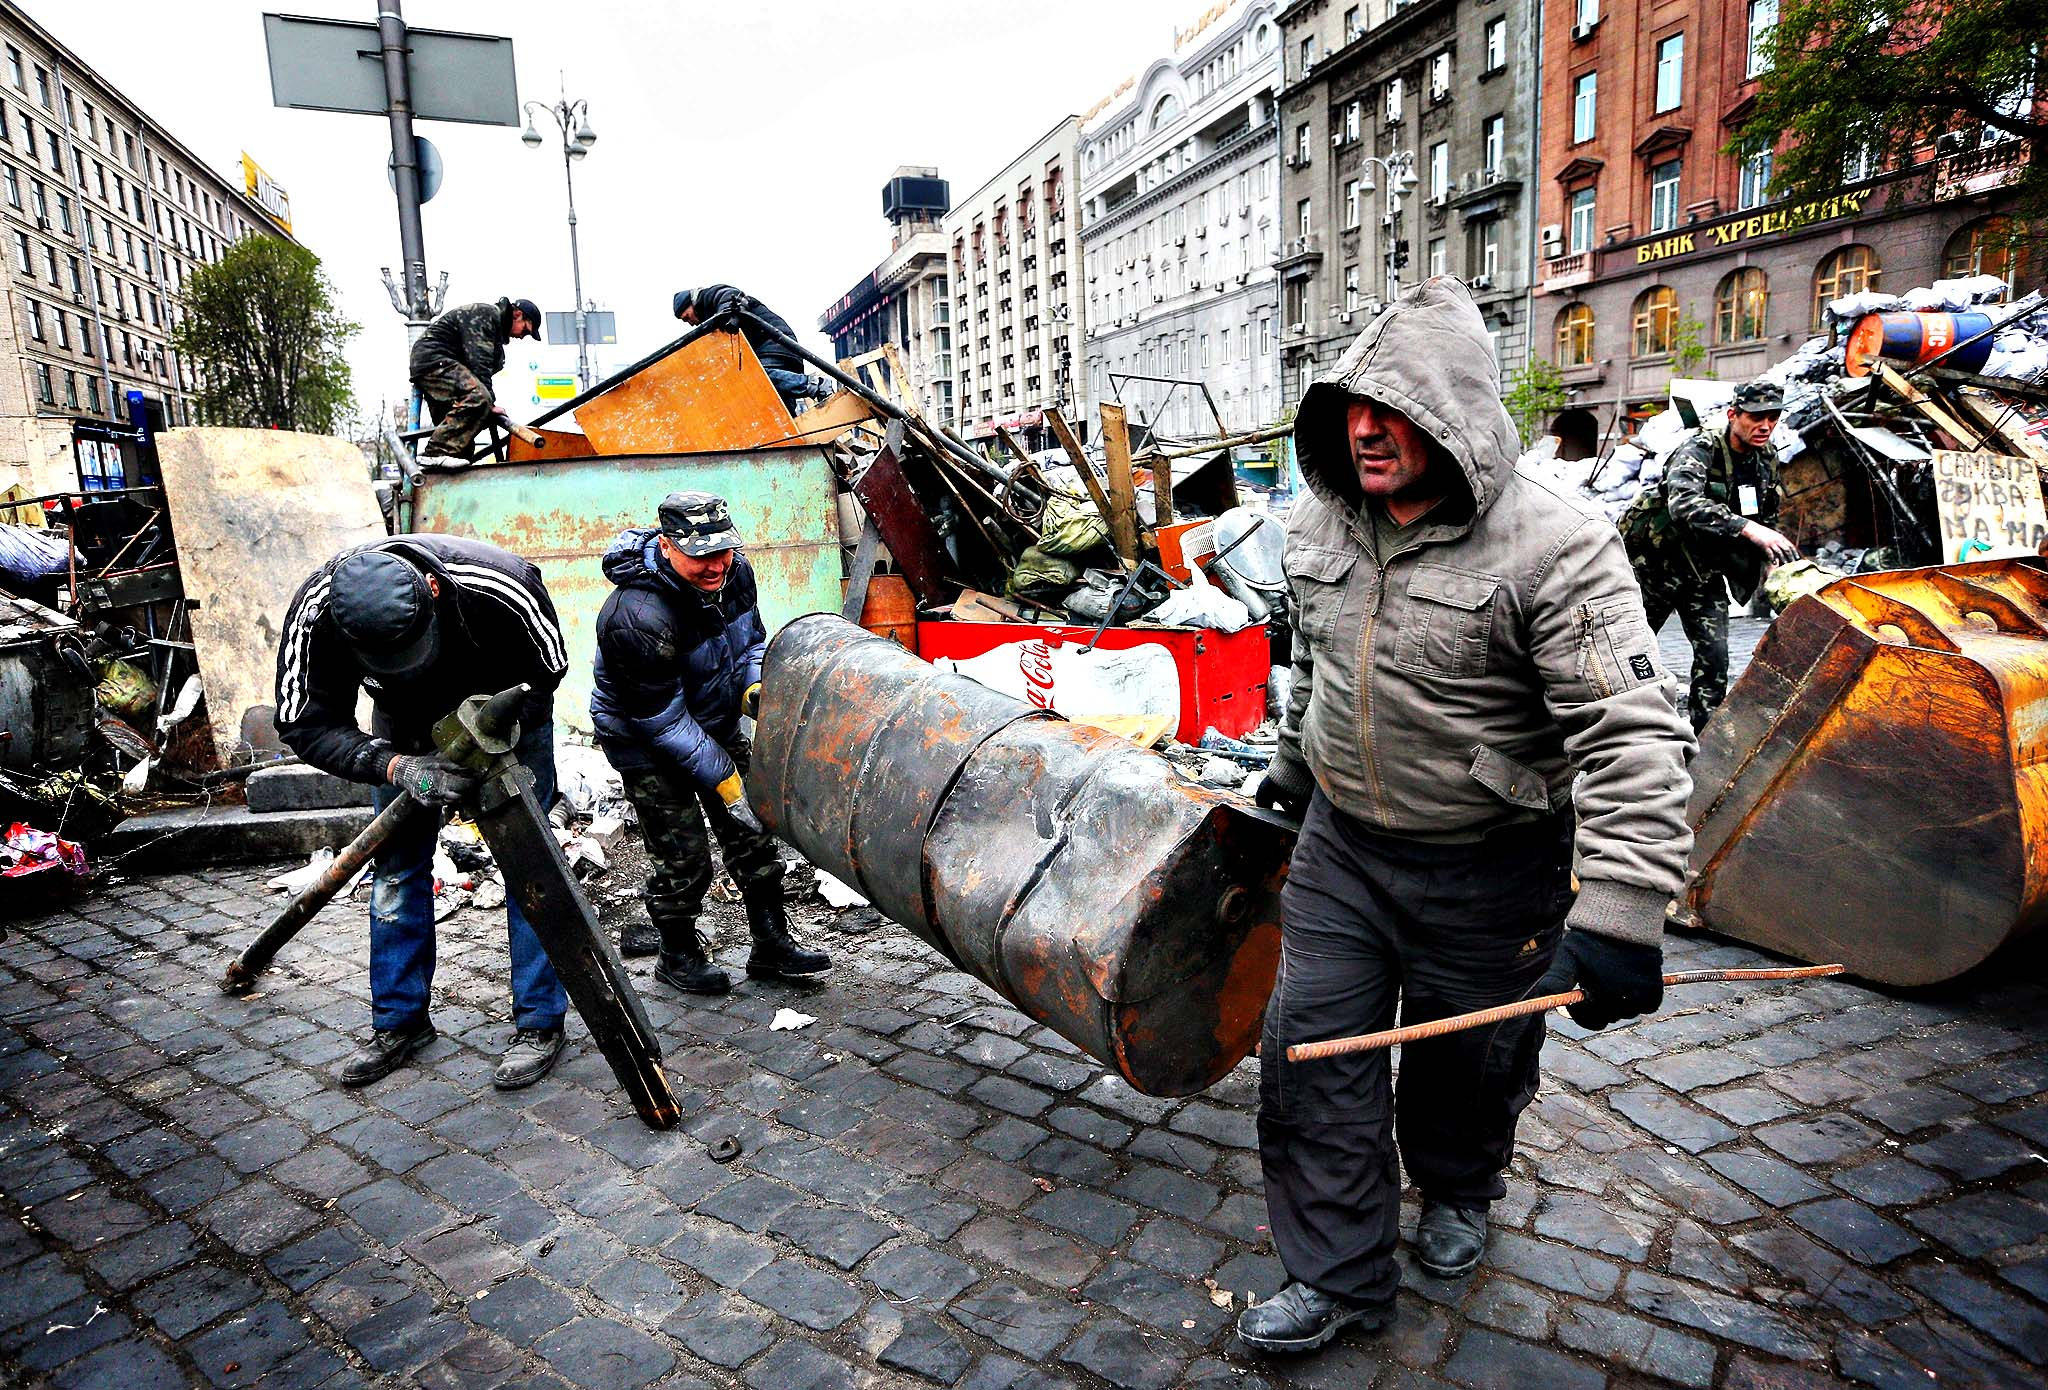 Ukrainians remove a barricade near Independence Square in Kiev, Ukraine, 10 April 2014. Pro-Russian protesters continued to hold seized Ukrainian administrative buildings in Donetsk and Lugansk, which were occupied by them some days ago.